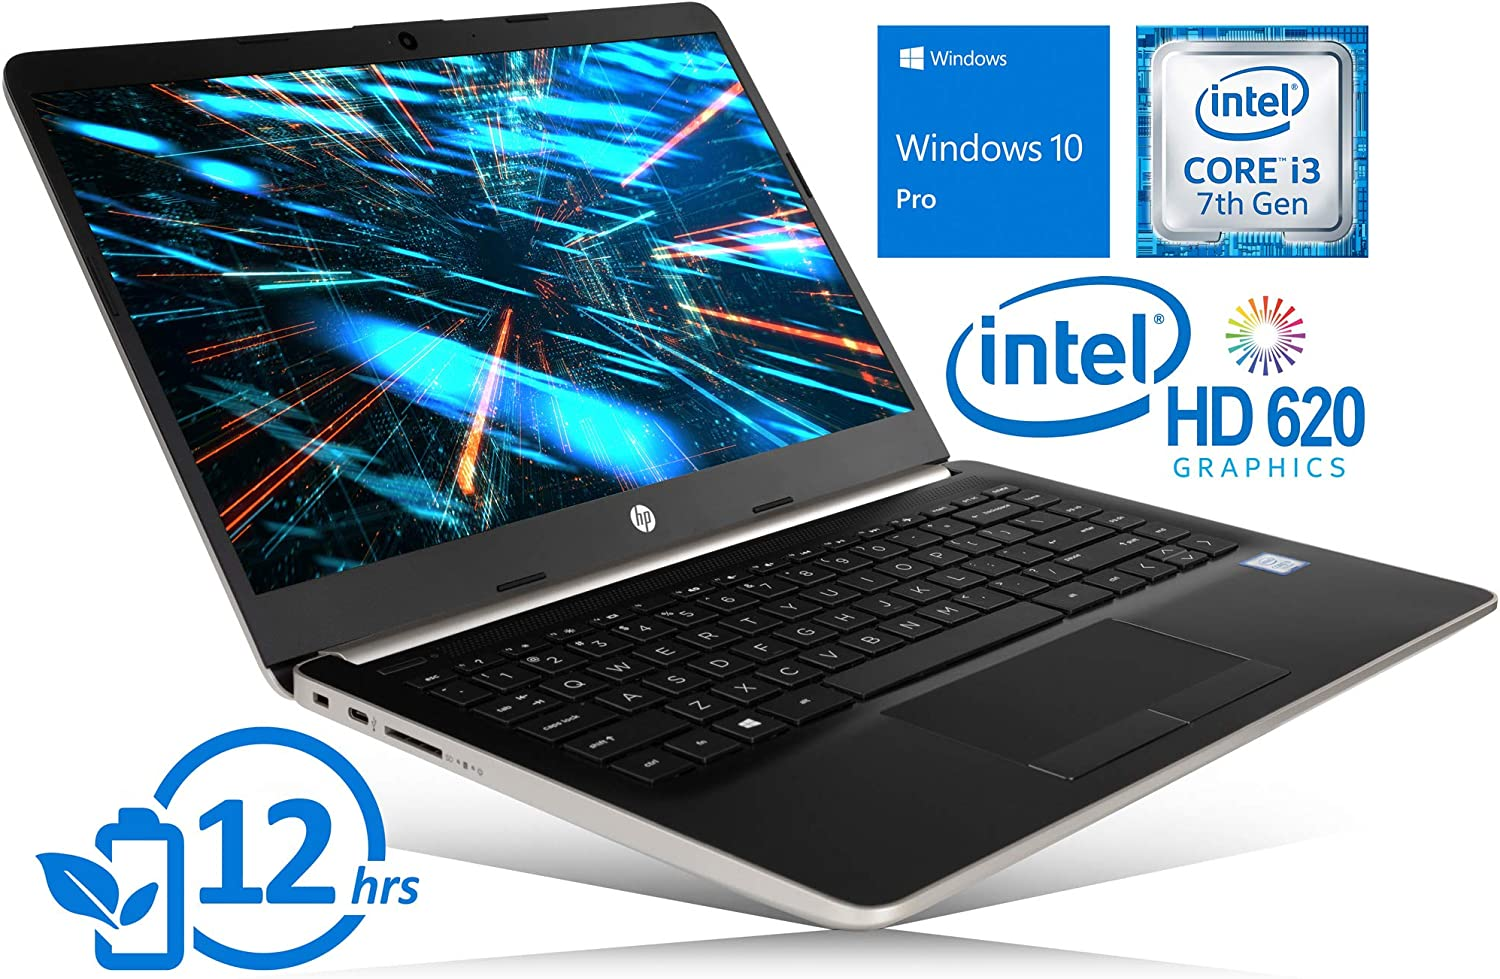 "HP 14"" Laptop, 2.4GHz Intel Core i3-7100U, 8GB RAM, 256GB SSD, HDMI, Card Reader, Wi-Fi, Bluetooth, Windows 10 Pro (Gold)"